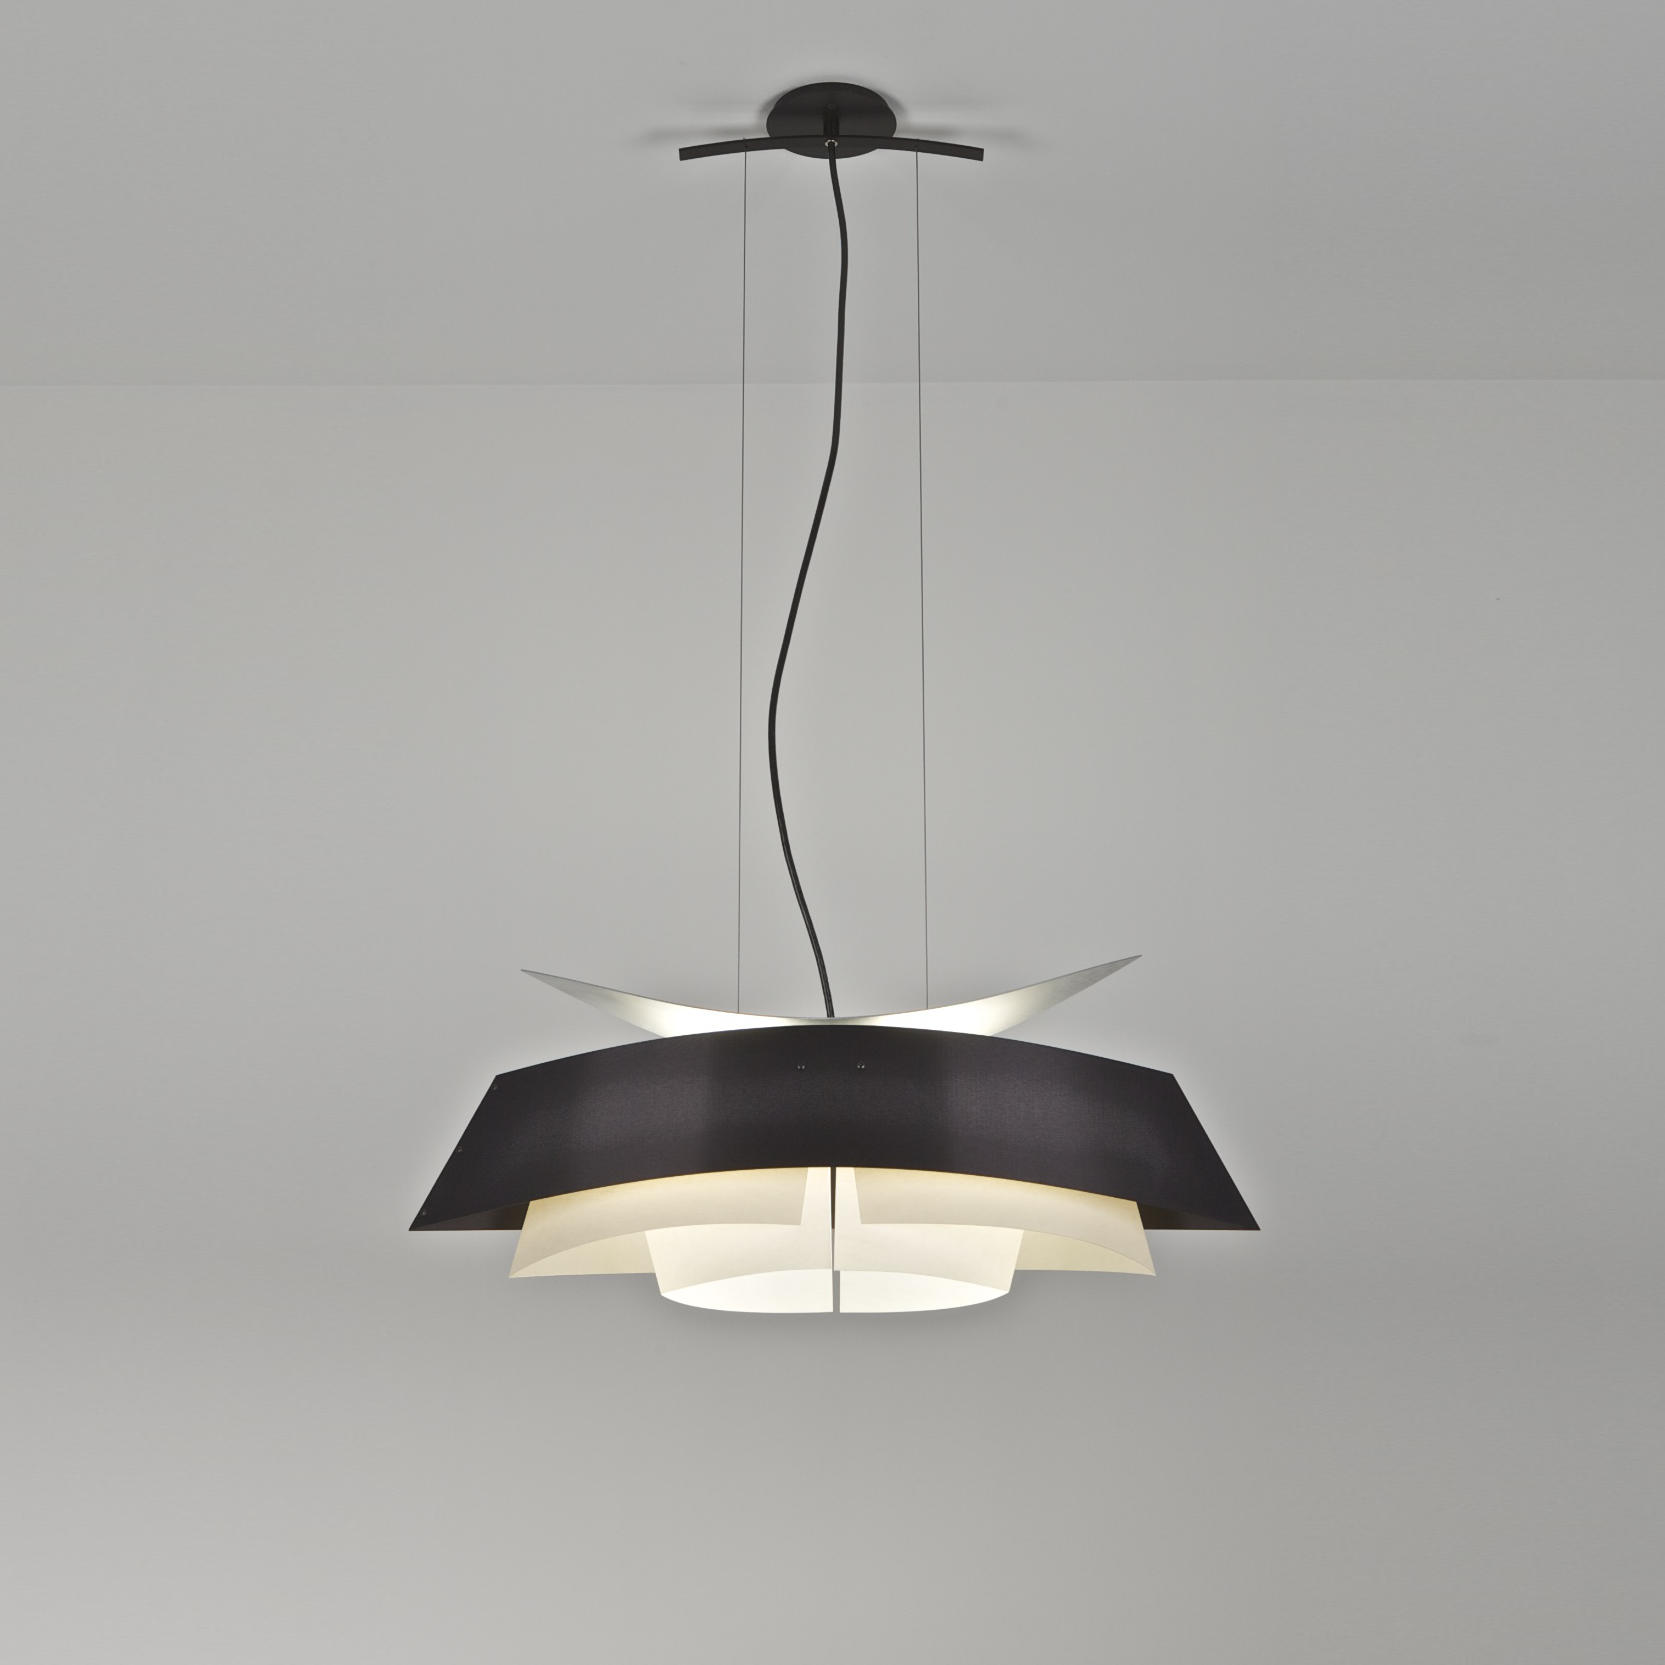 Chapeau 29 Suspended Lights From Resolute Architonic